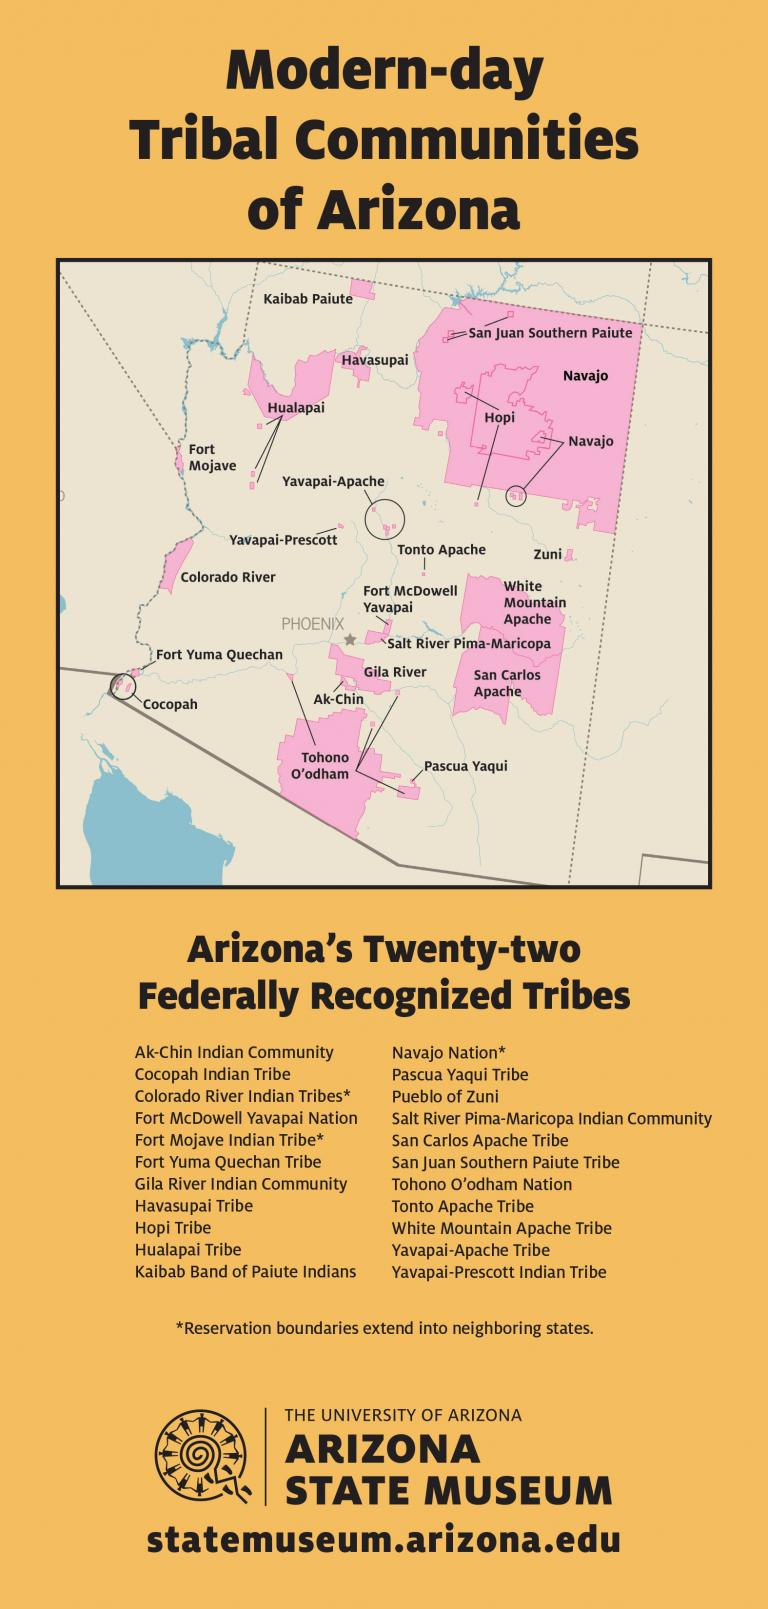 This images shows the modern-day tribal communities of Arizona and lists Arizona's 22 federally recognized tribes.